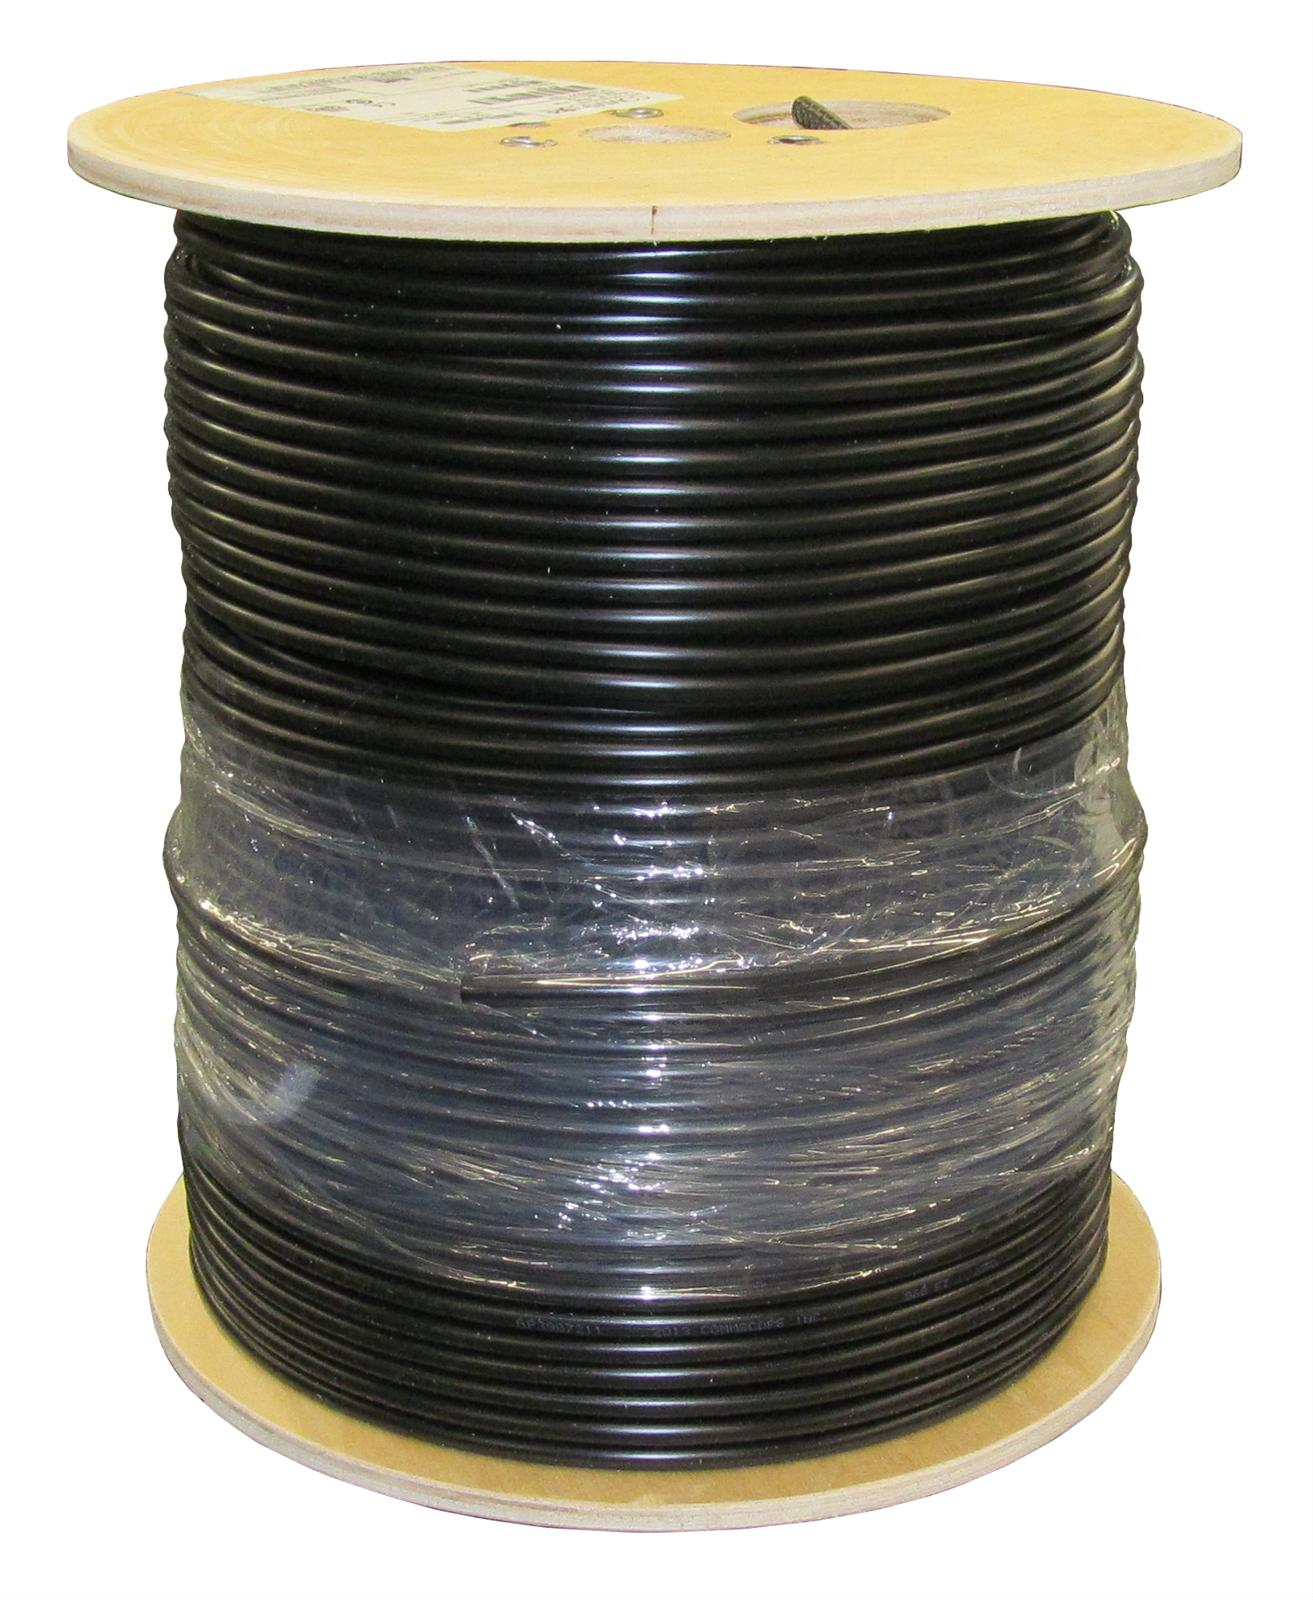 DX Engineering F6 75-ohm Bulk Coaxial Cable DXE-F6-1000 - Free ...